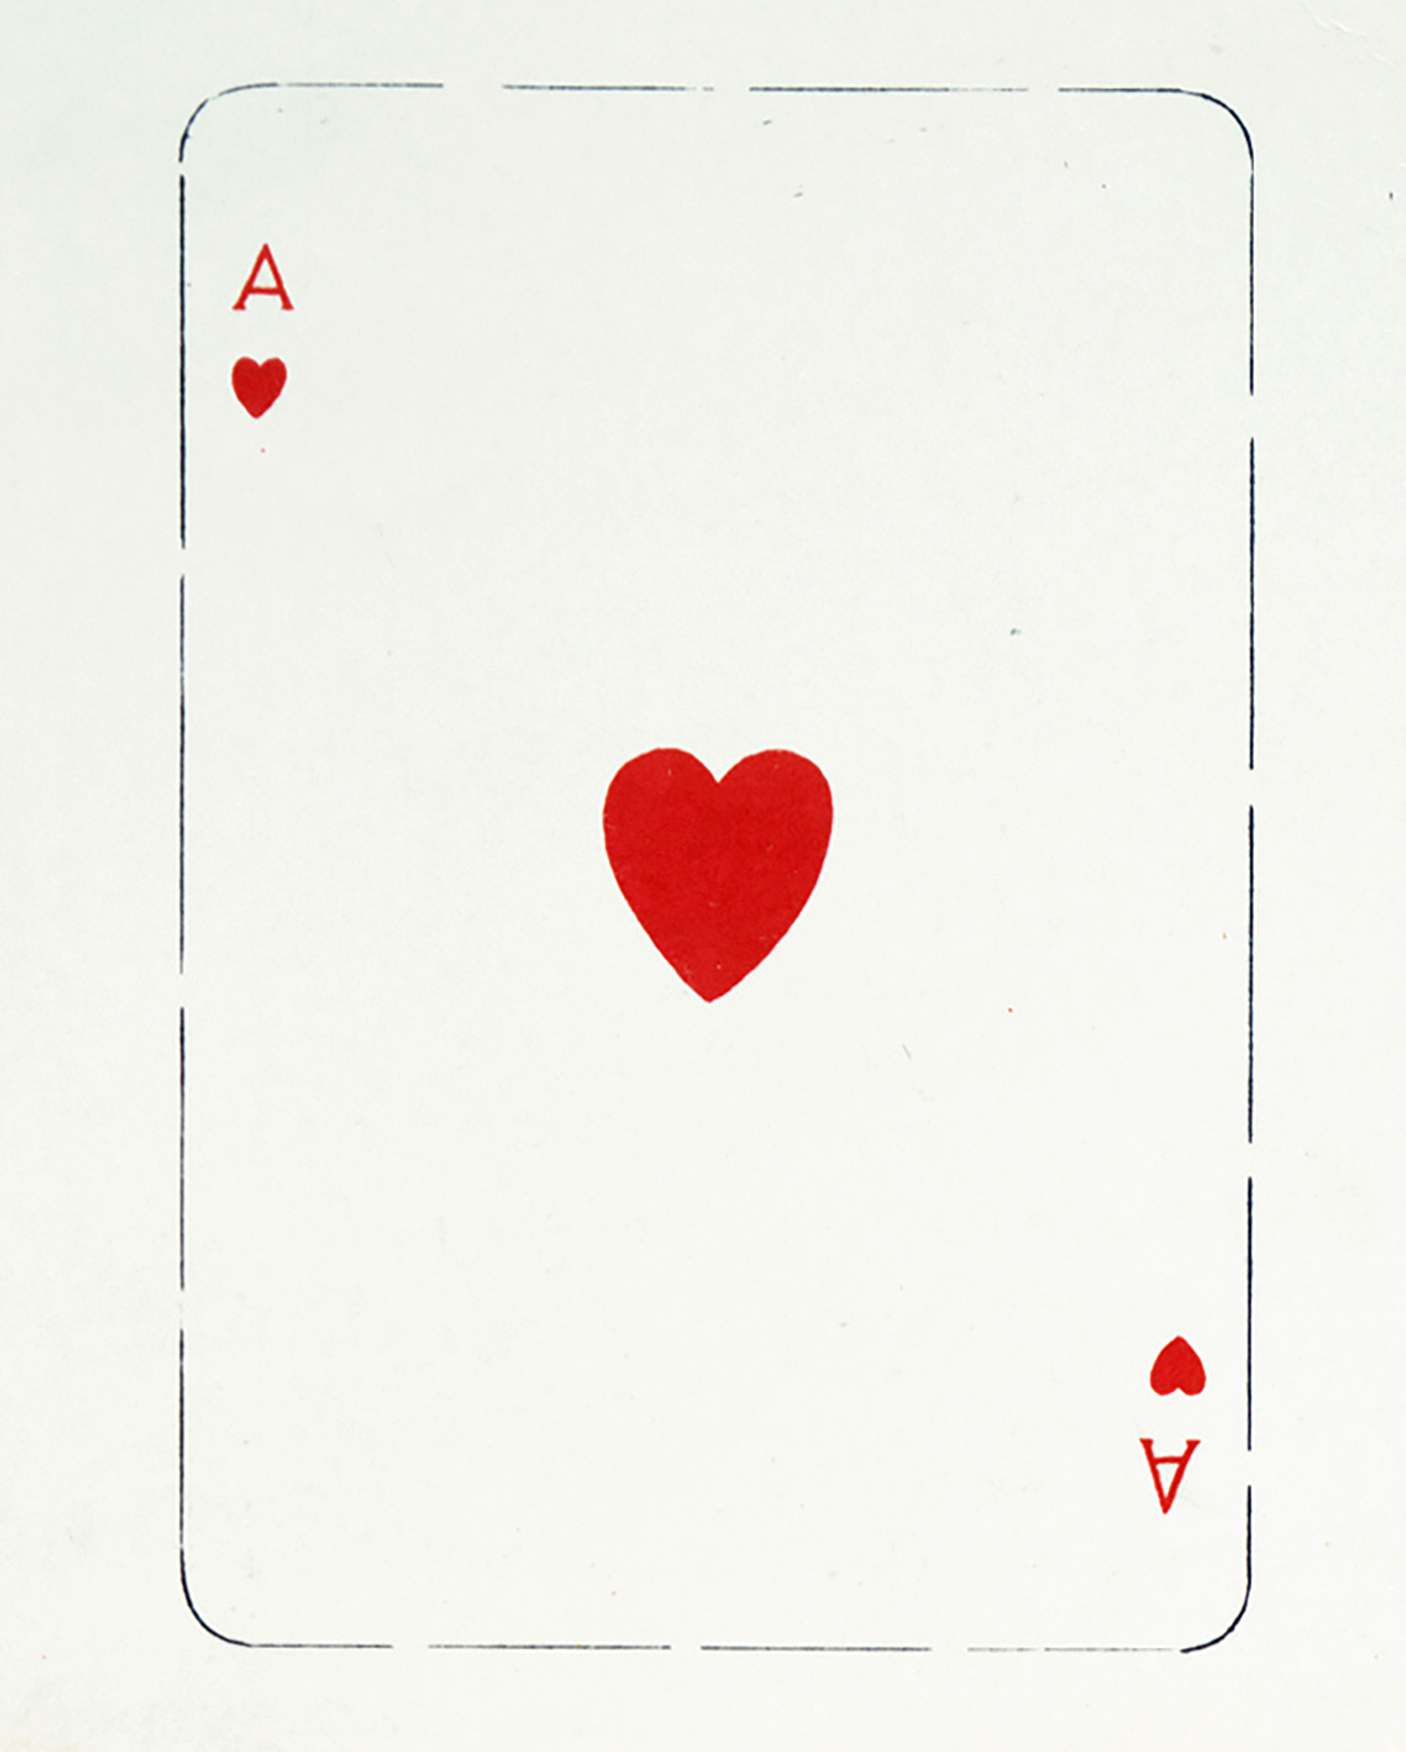 Vintage Ace Of Hearts Image